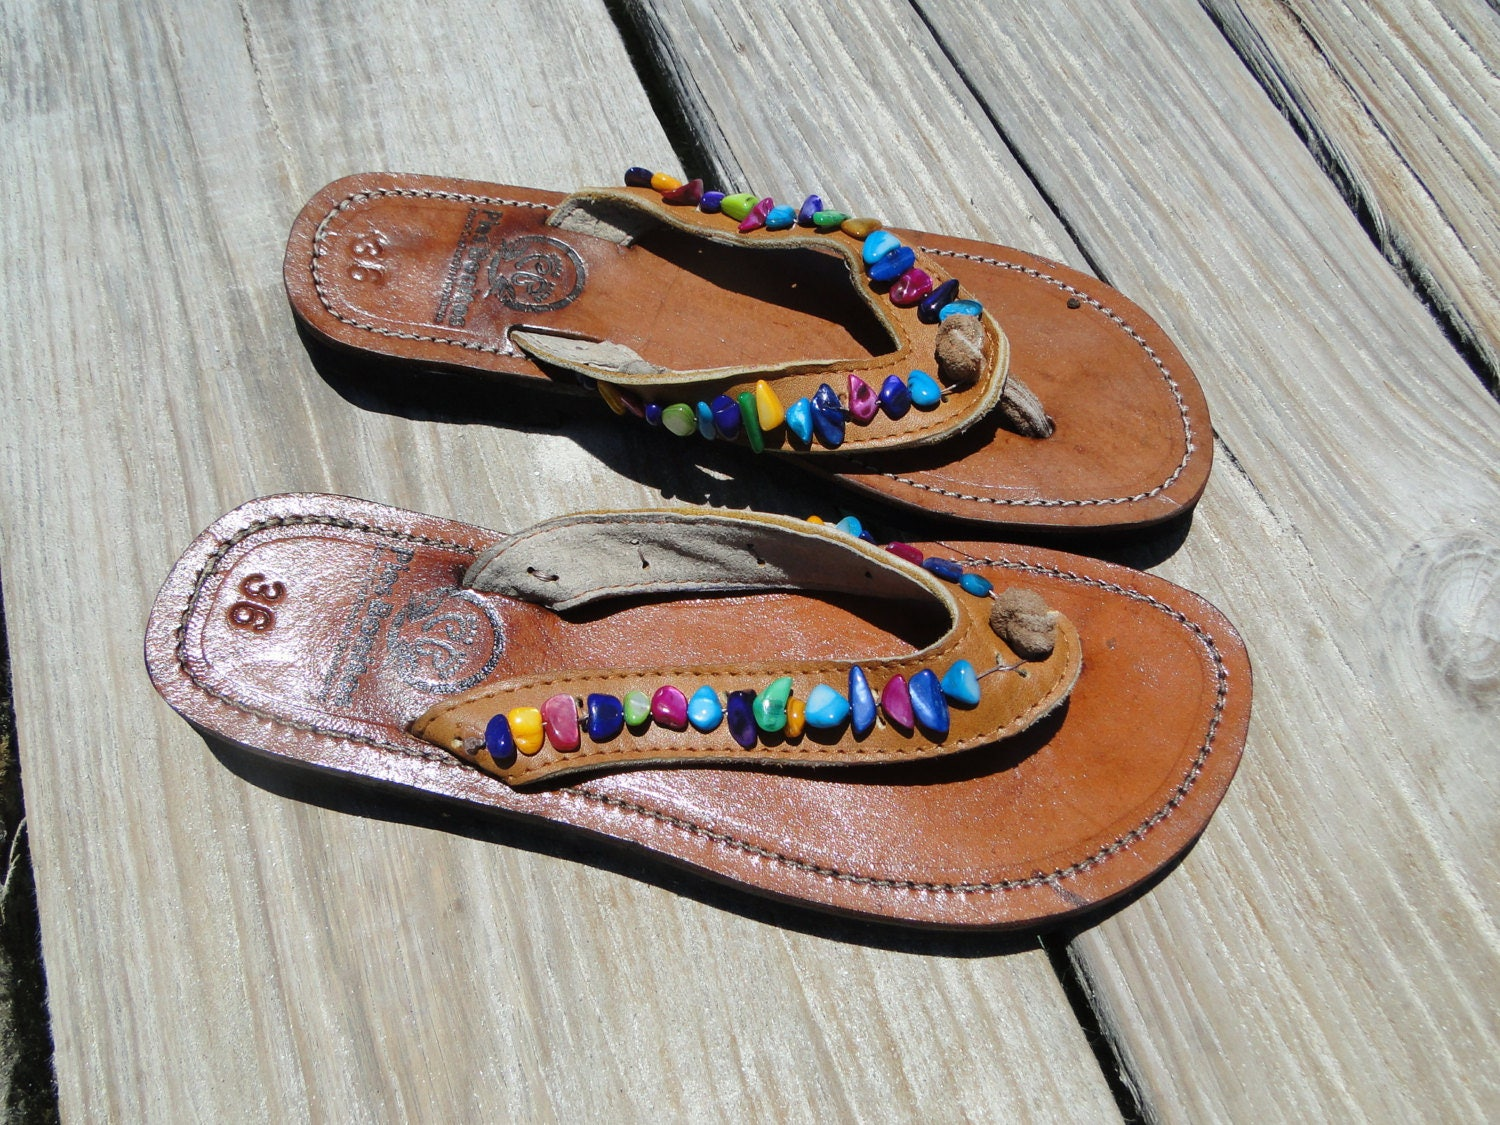 c42623193ff990 Rainbow Beaded Leather Sandals from Honduras - Fair Trade - Brown Leather  Beaded Flip Flops